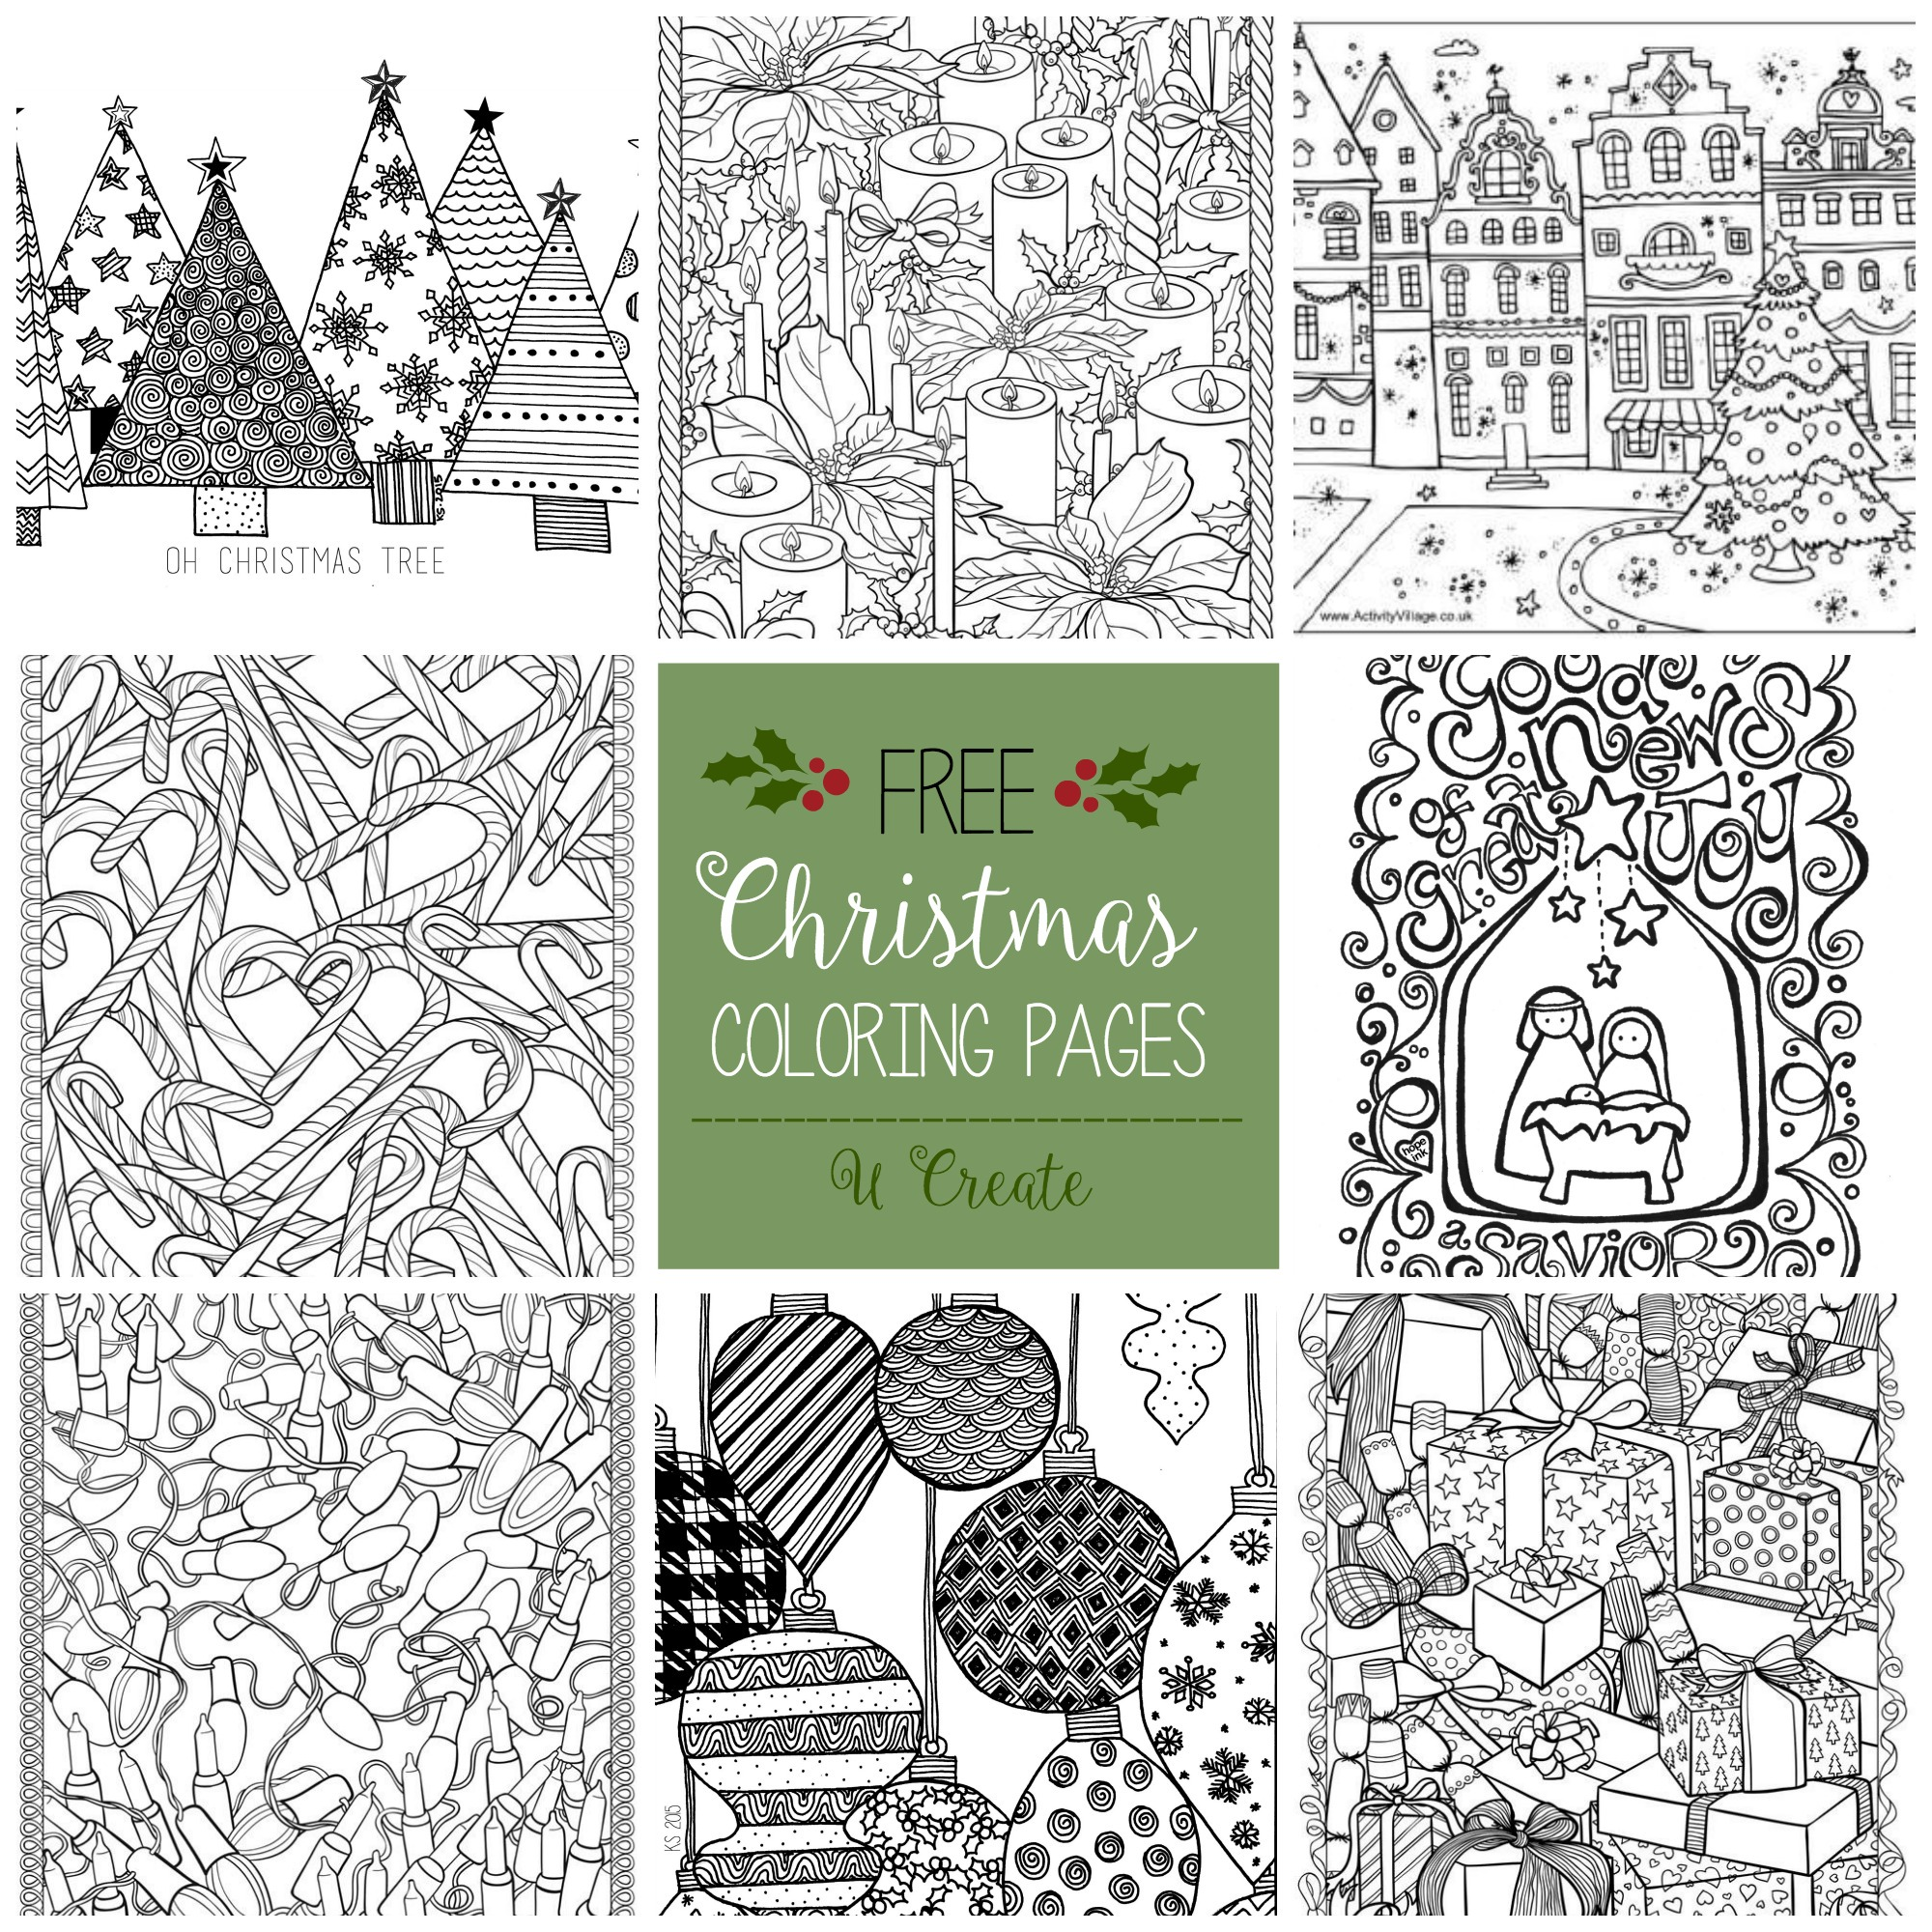 Christmas Tree Colouring Pages For Adults With Free Adult Coloring U Create